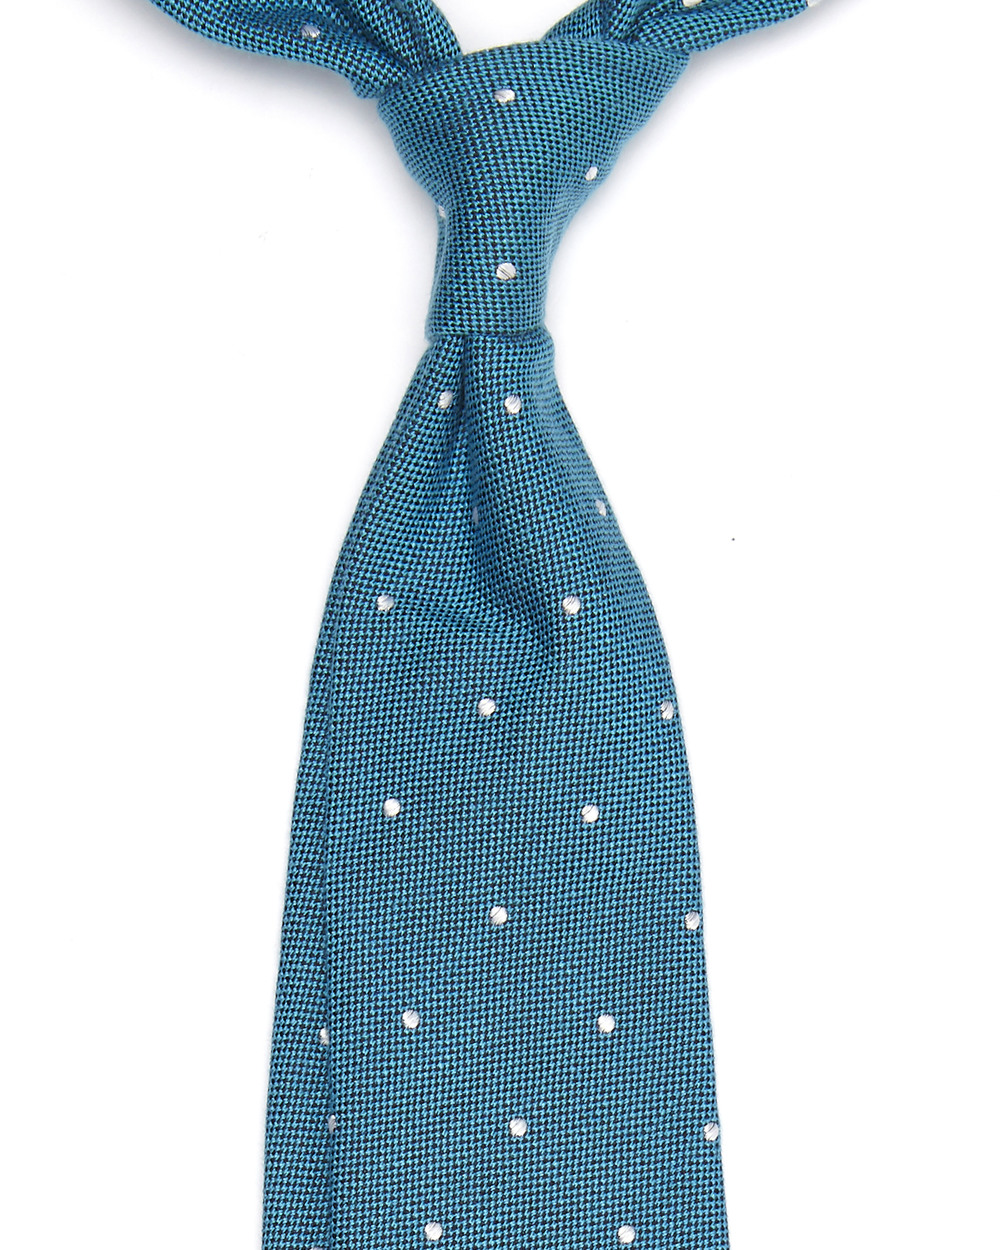 Montague  Tie | Silk Jacquard Polka dots | 8 Exclusive Hand  Made Ties Available - £98.00